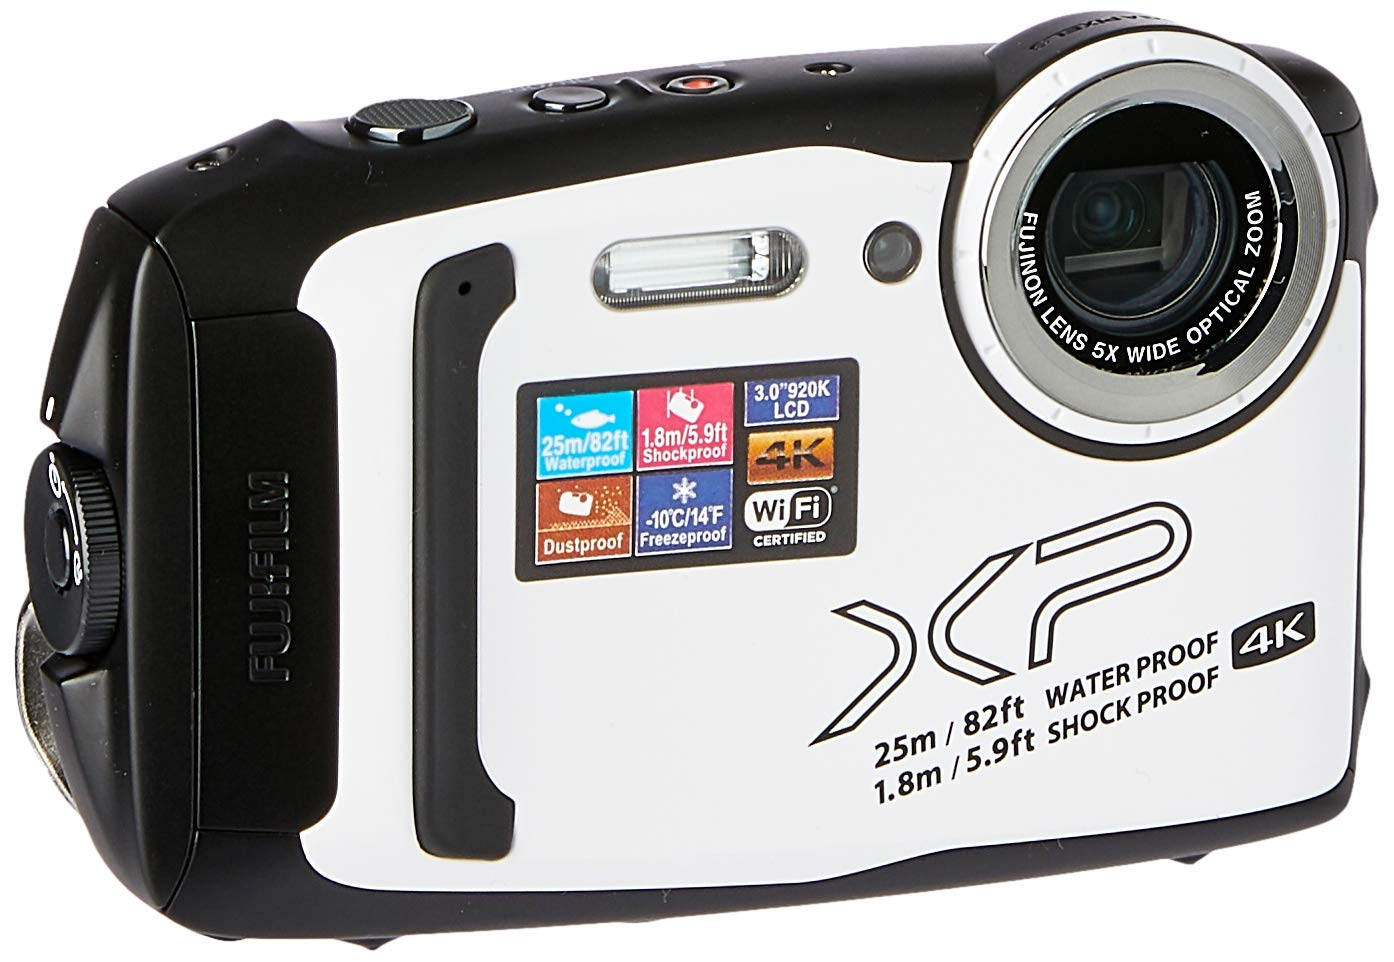 Fujifilm FinePix XP140 Waterproof Digital Camera-White: Buy Online at Best  Price in UAE - Amazon.ae